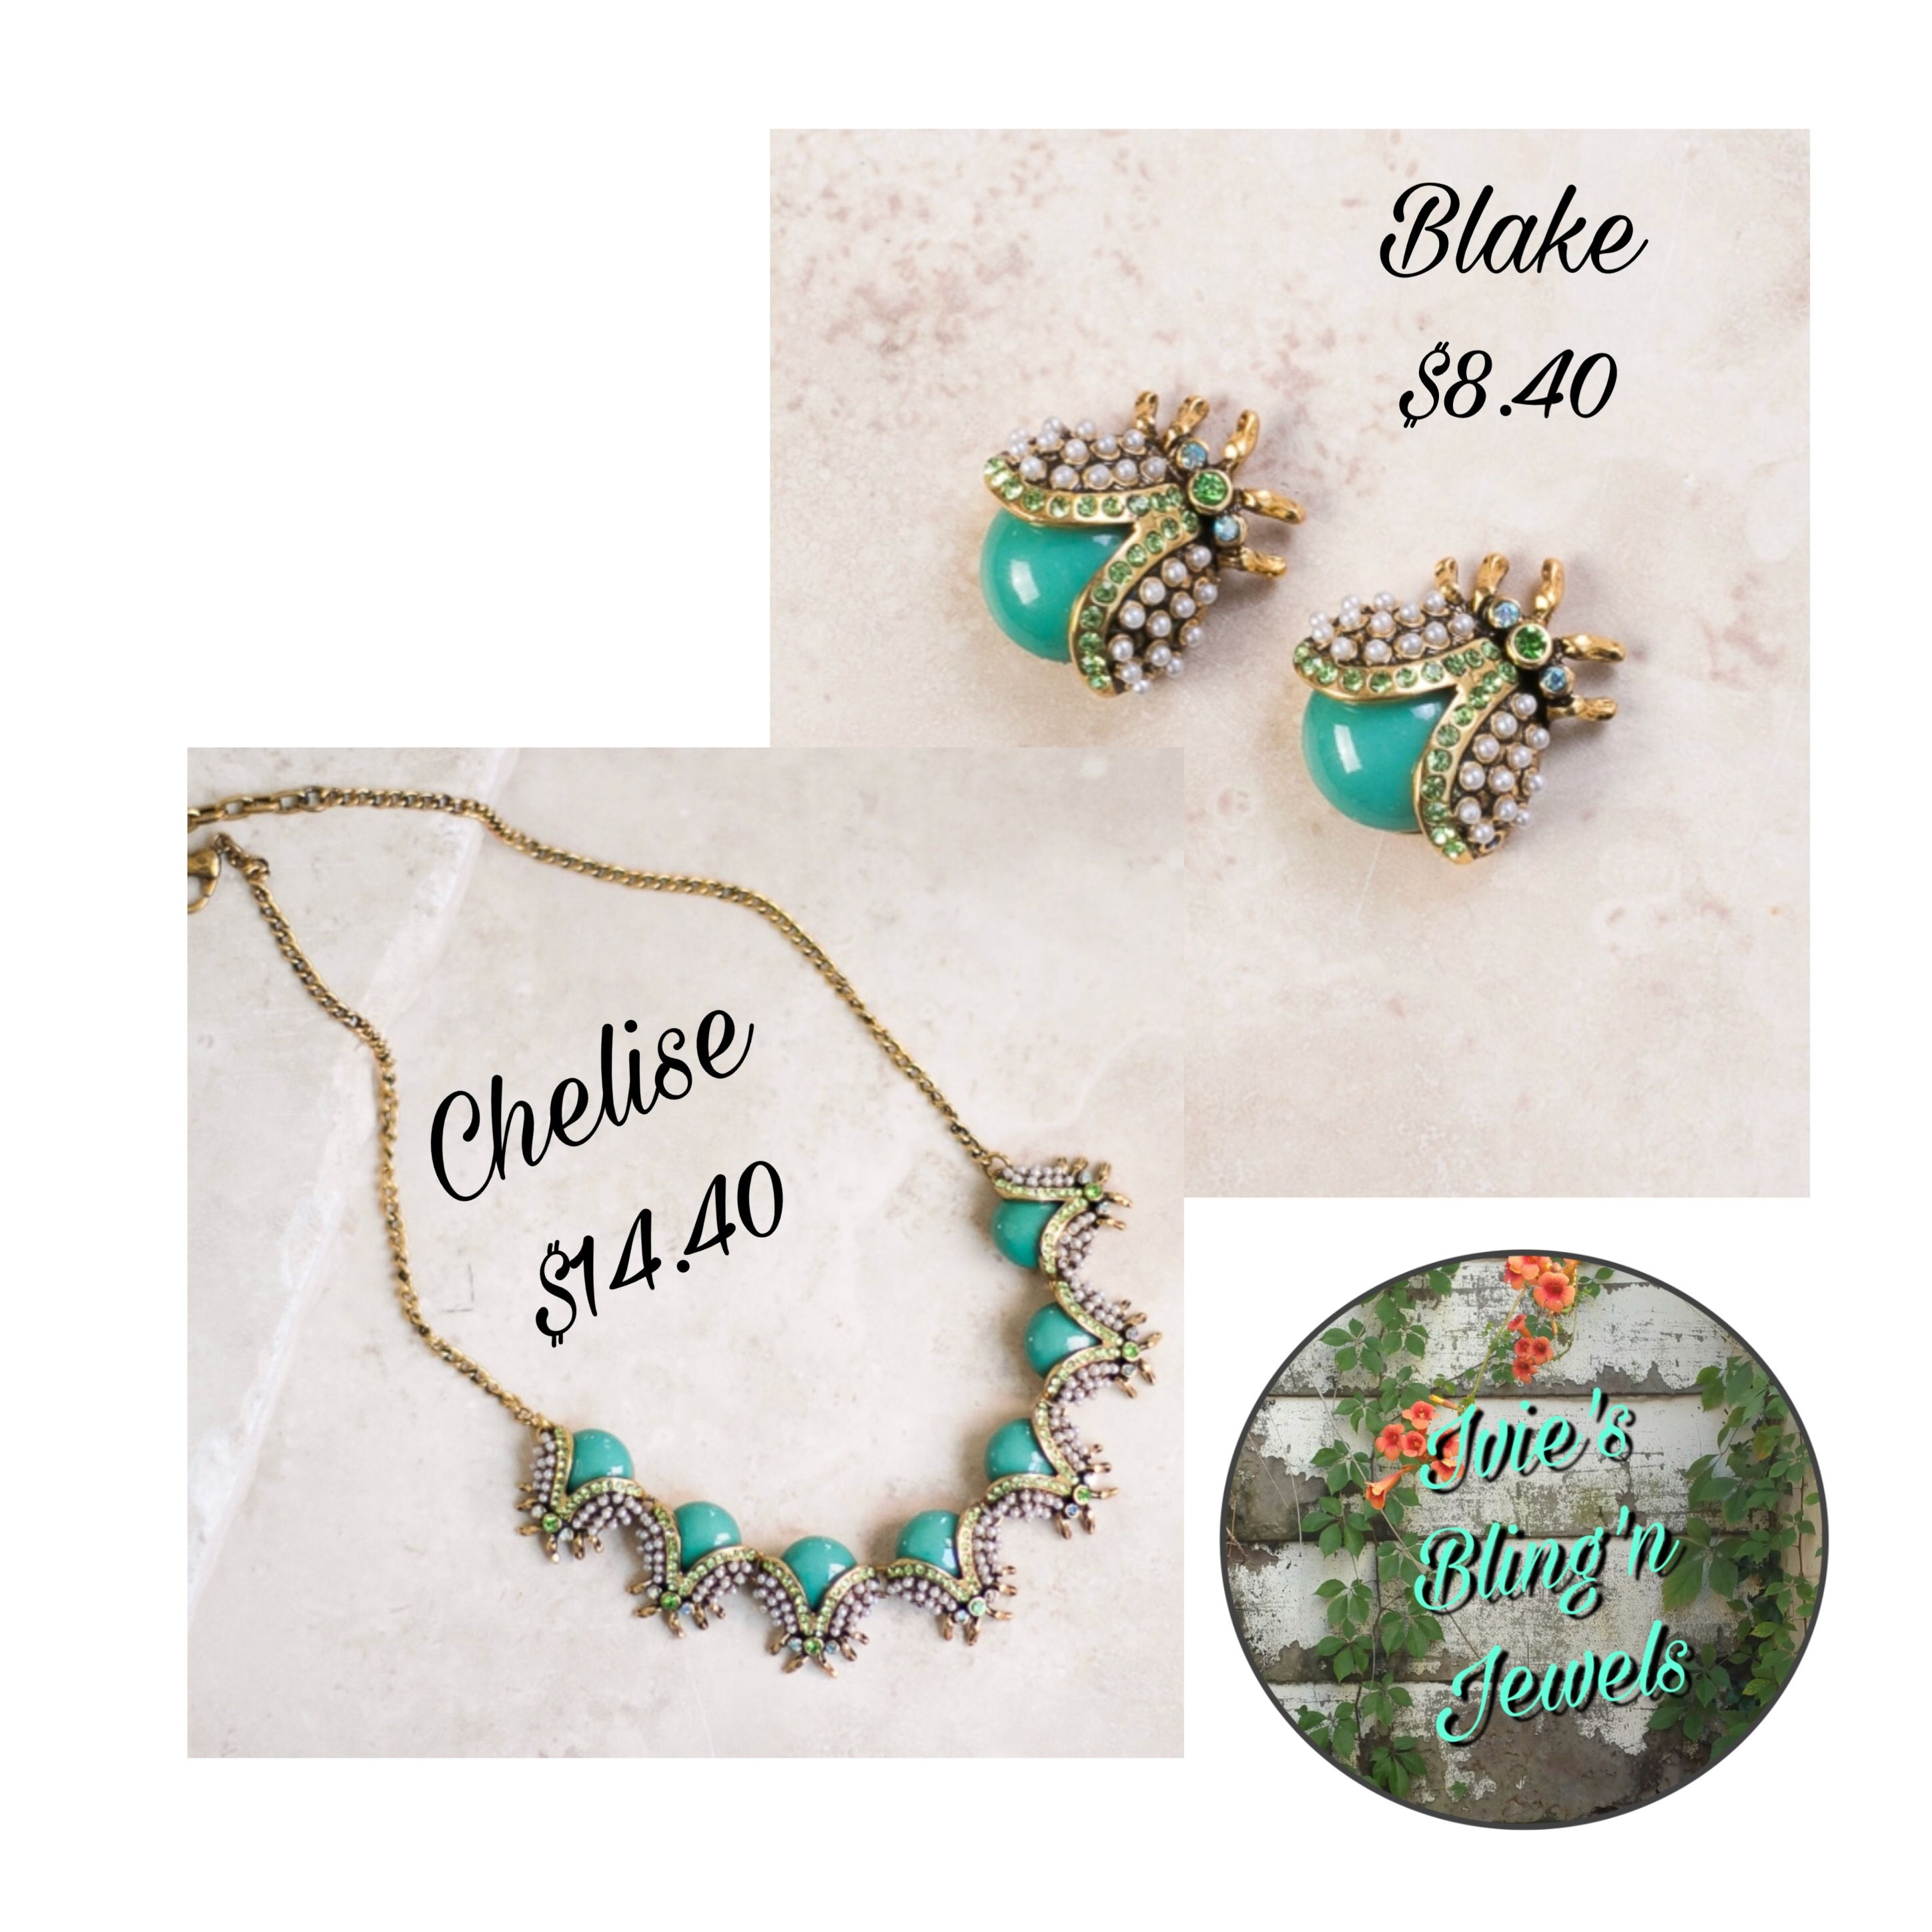 dbb284233b01 Plunder Mania items are now 40% off!!! Go check it out!! Blake and Chelise  are both in that category